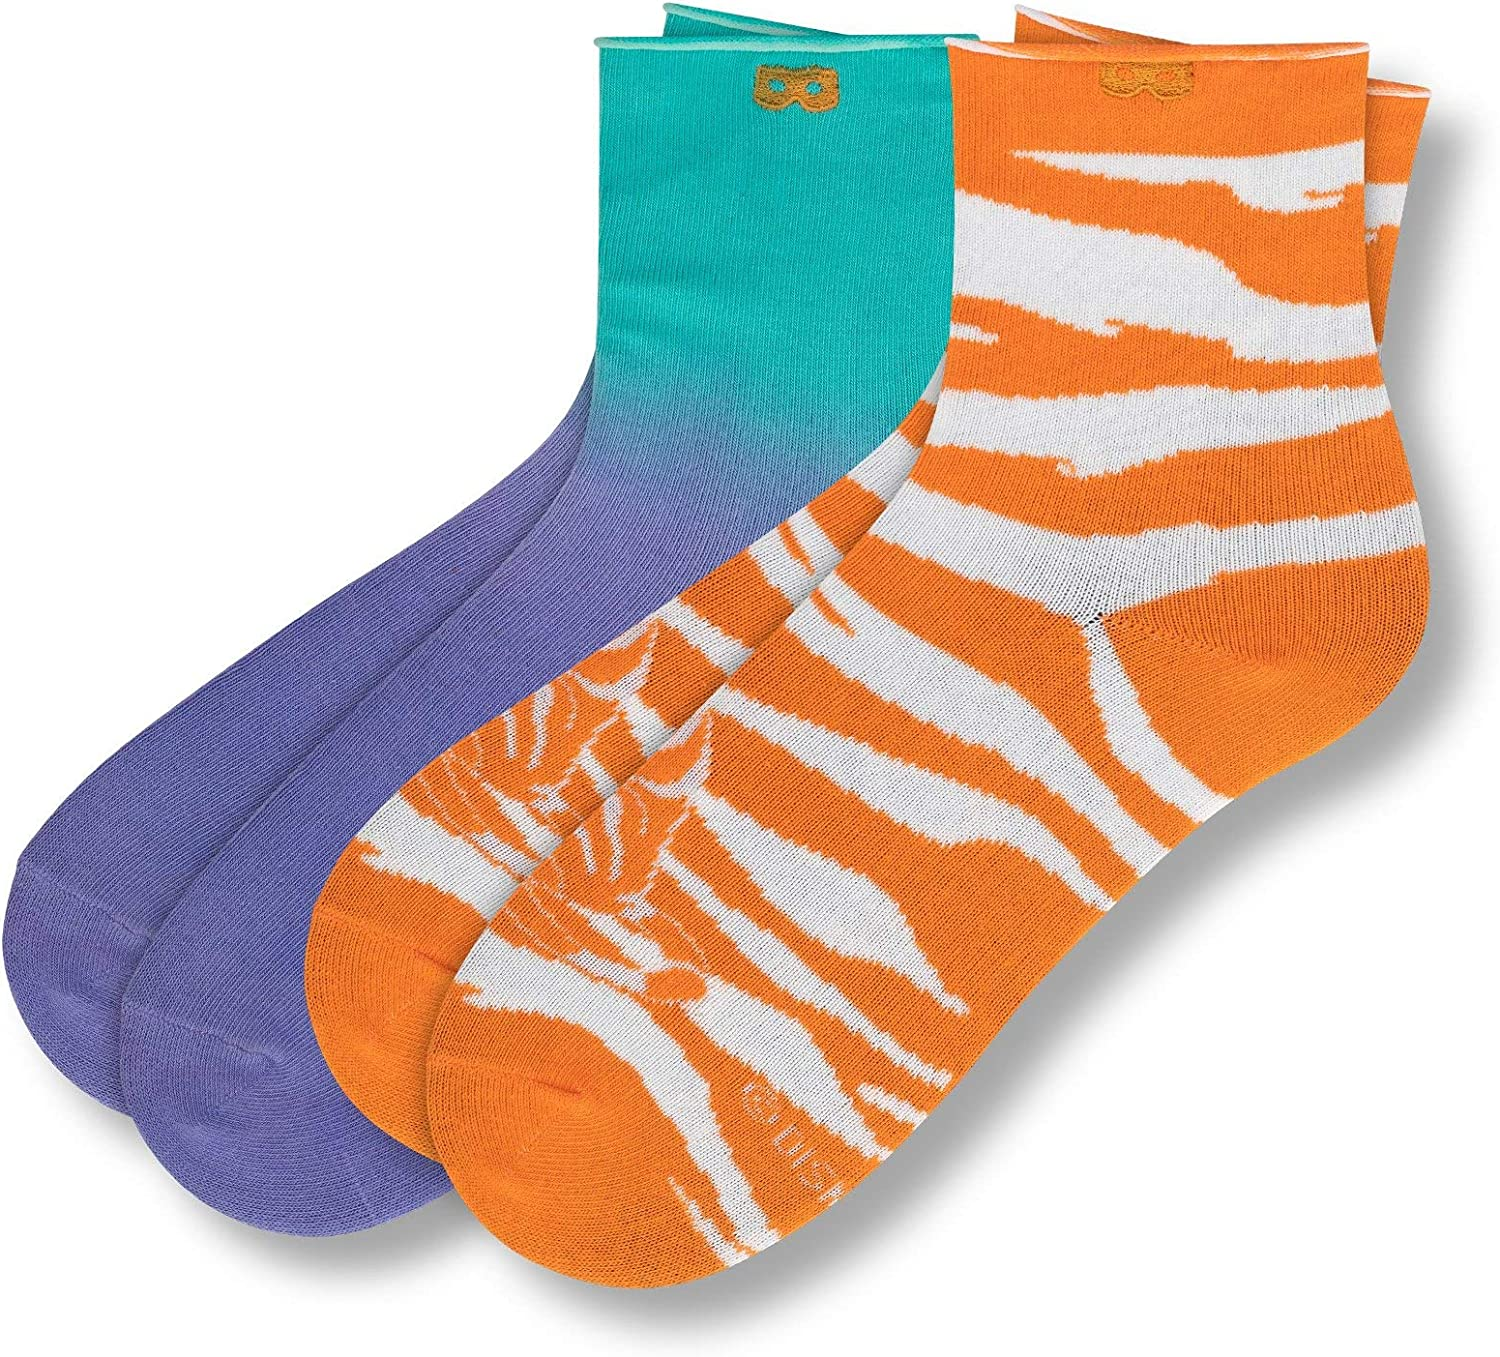 Pair of Thieves Women's x Disney Aladdin 2 Pack Ankle Socks, Whole New World (Orange), One Size